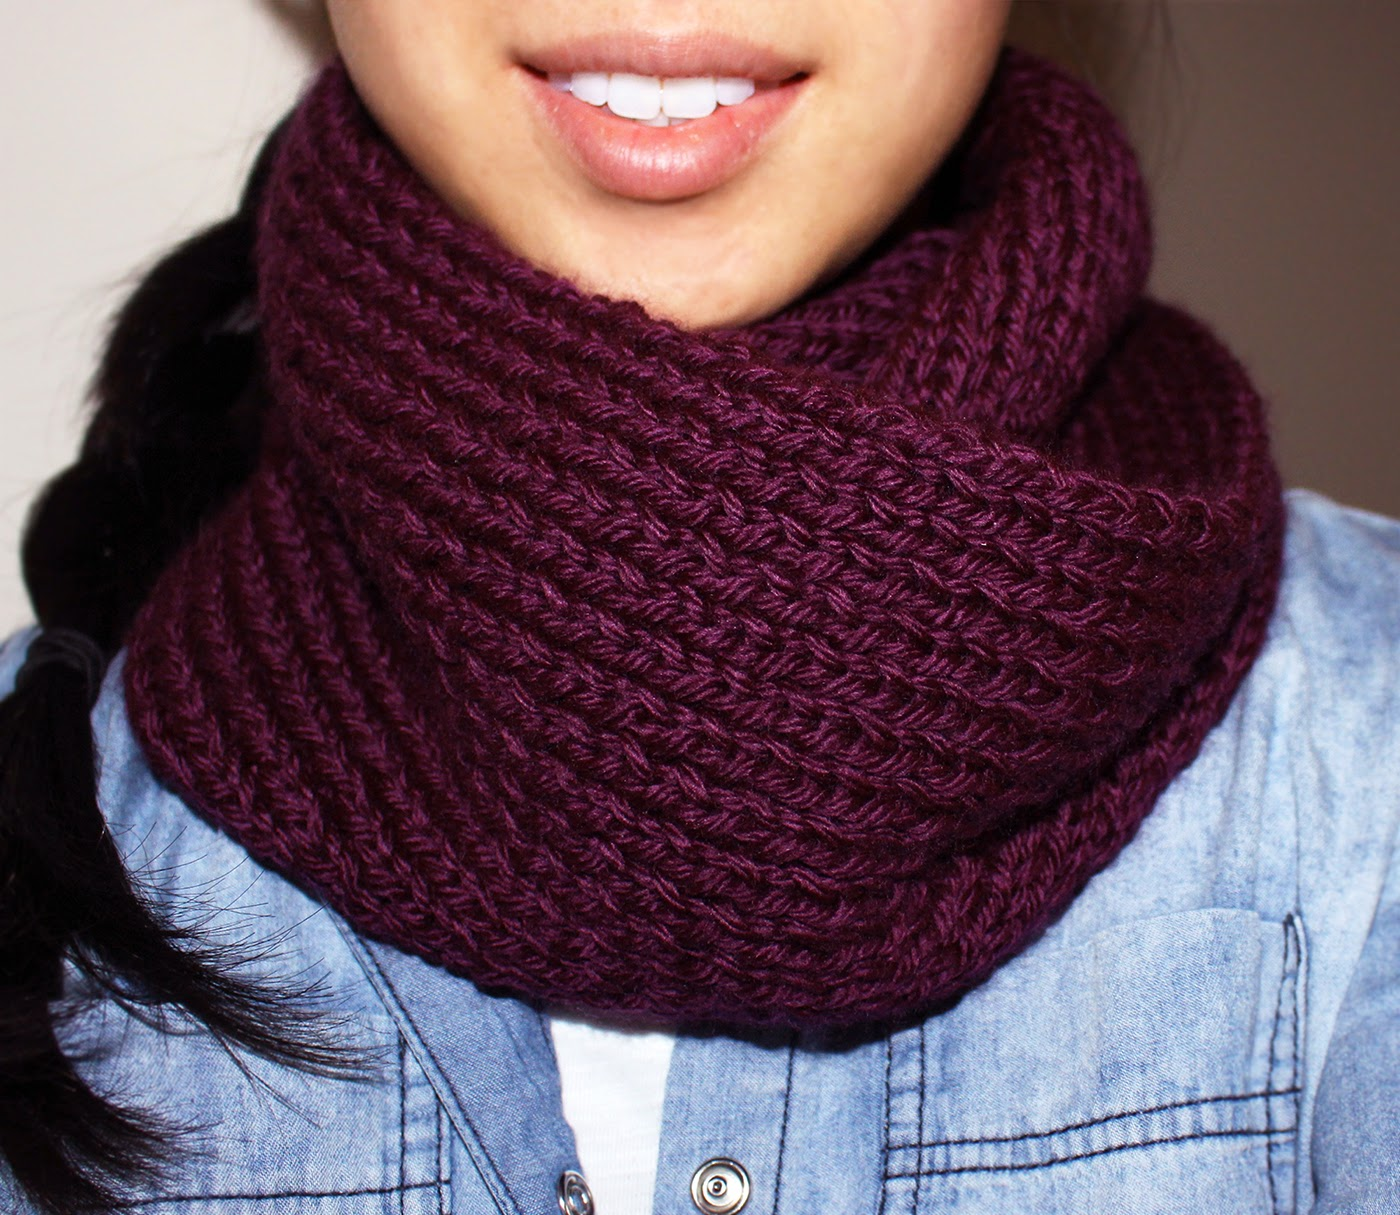 Free Knitting Patterns For Scarves Easy : Purllin: Acai Infinity Circle Scarf [free knitting pattern]